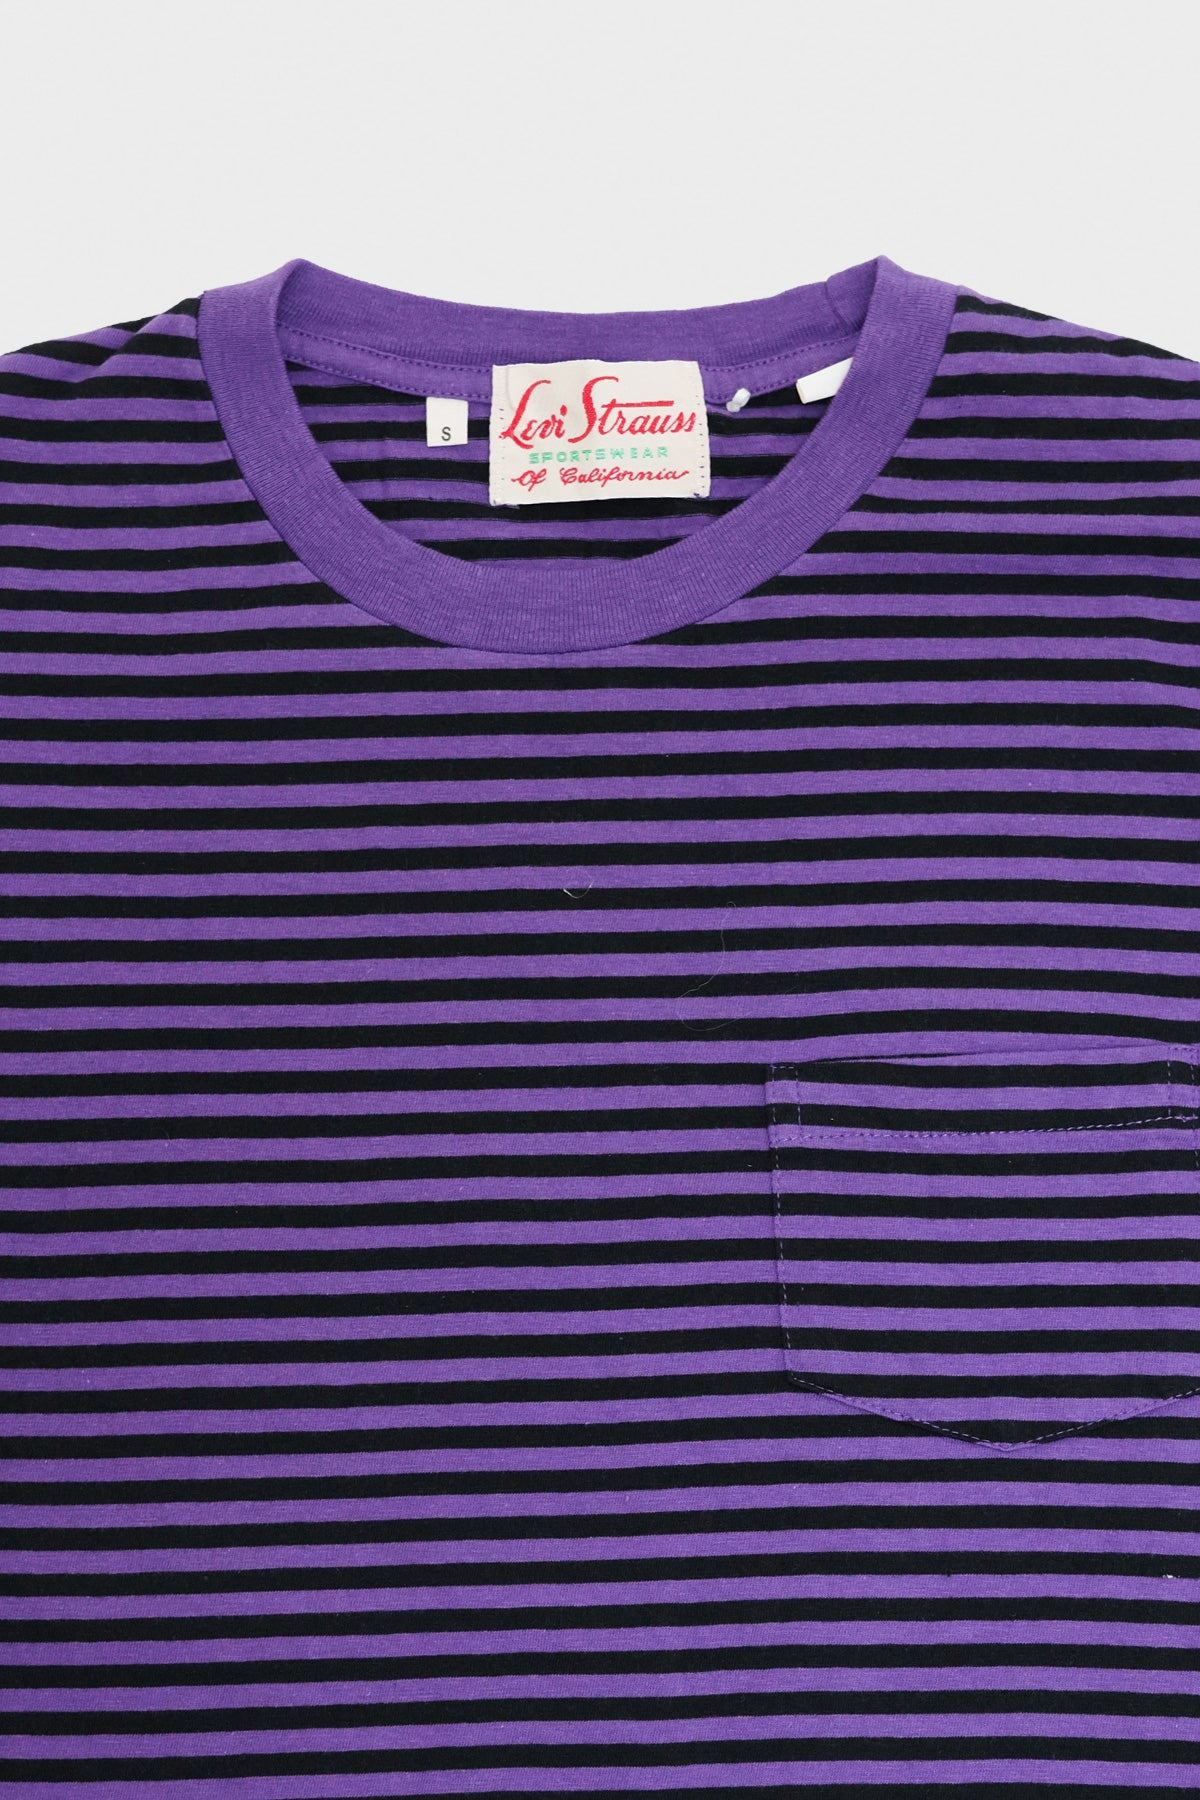 Levi's Vintage Clothing - 1950's Sportswear Tee - Purple Stripe Tonal - Canoe Club